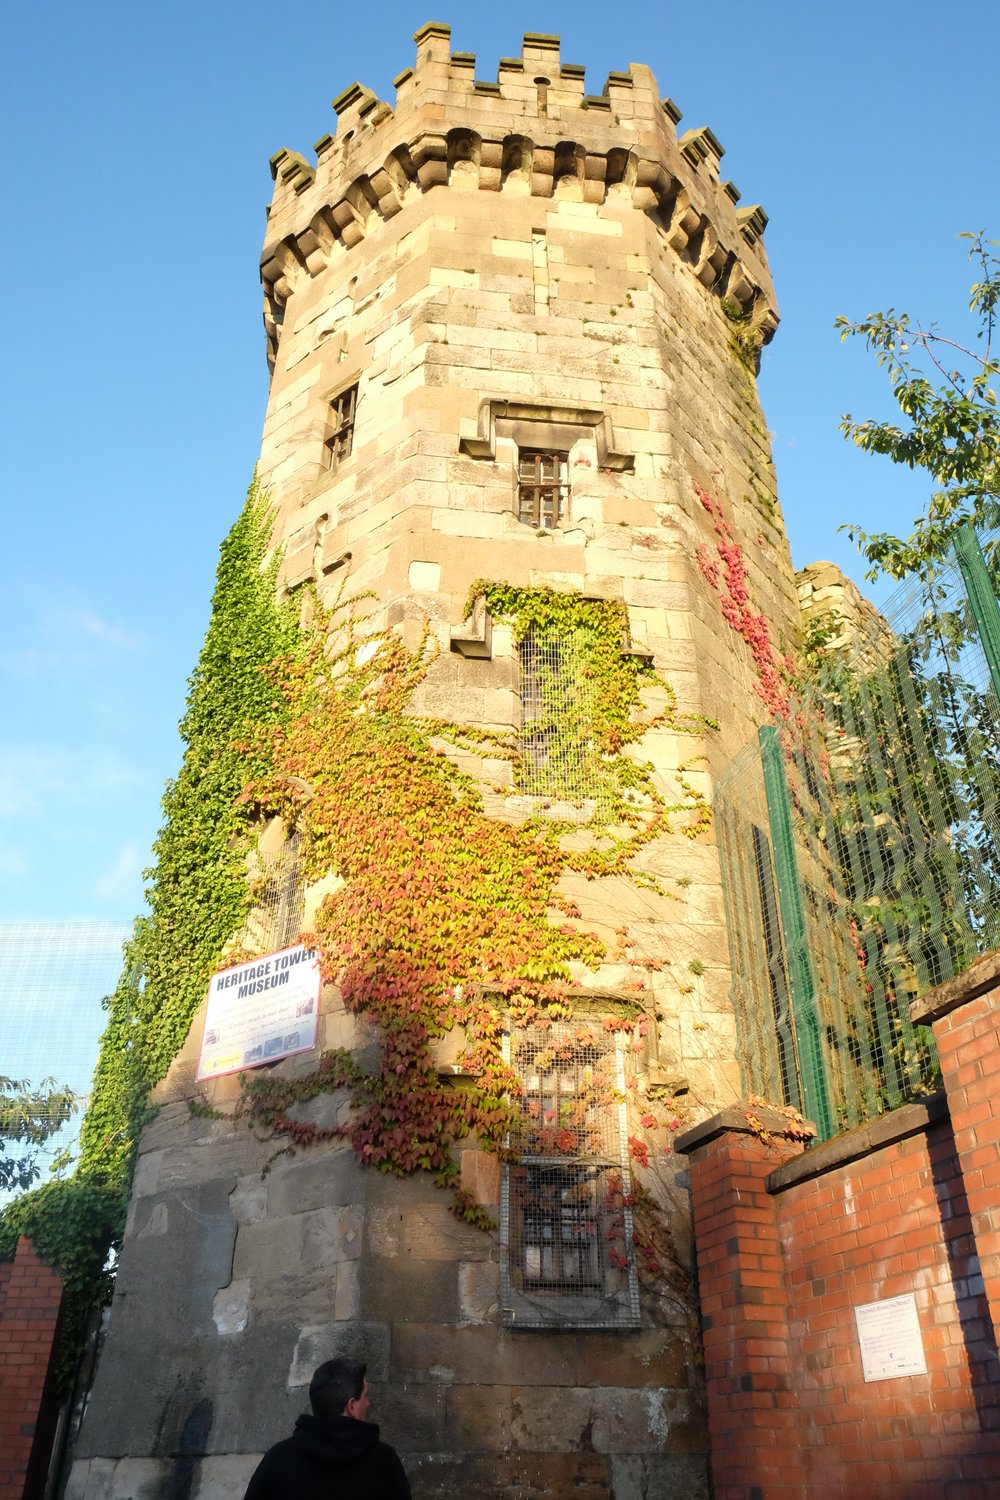 Heritage Tower, the last remaining part of Derry Jail. Officially closed in 1953, it now serves as a museum.